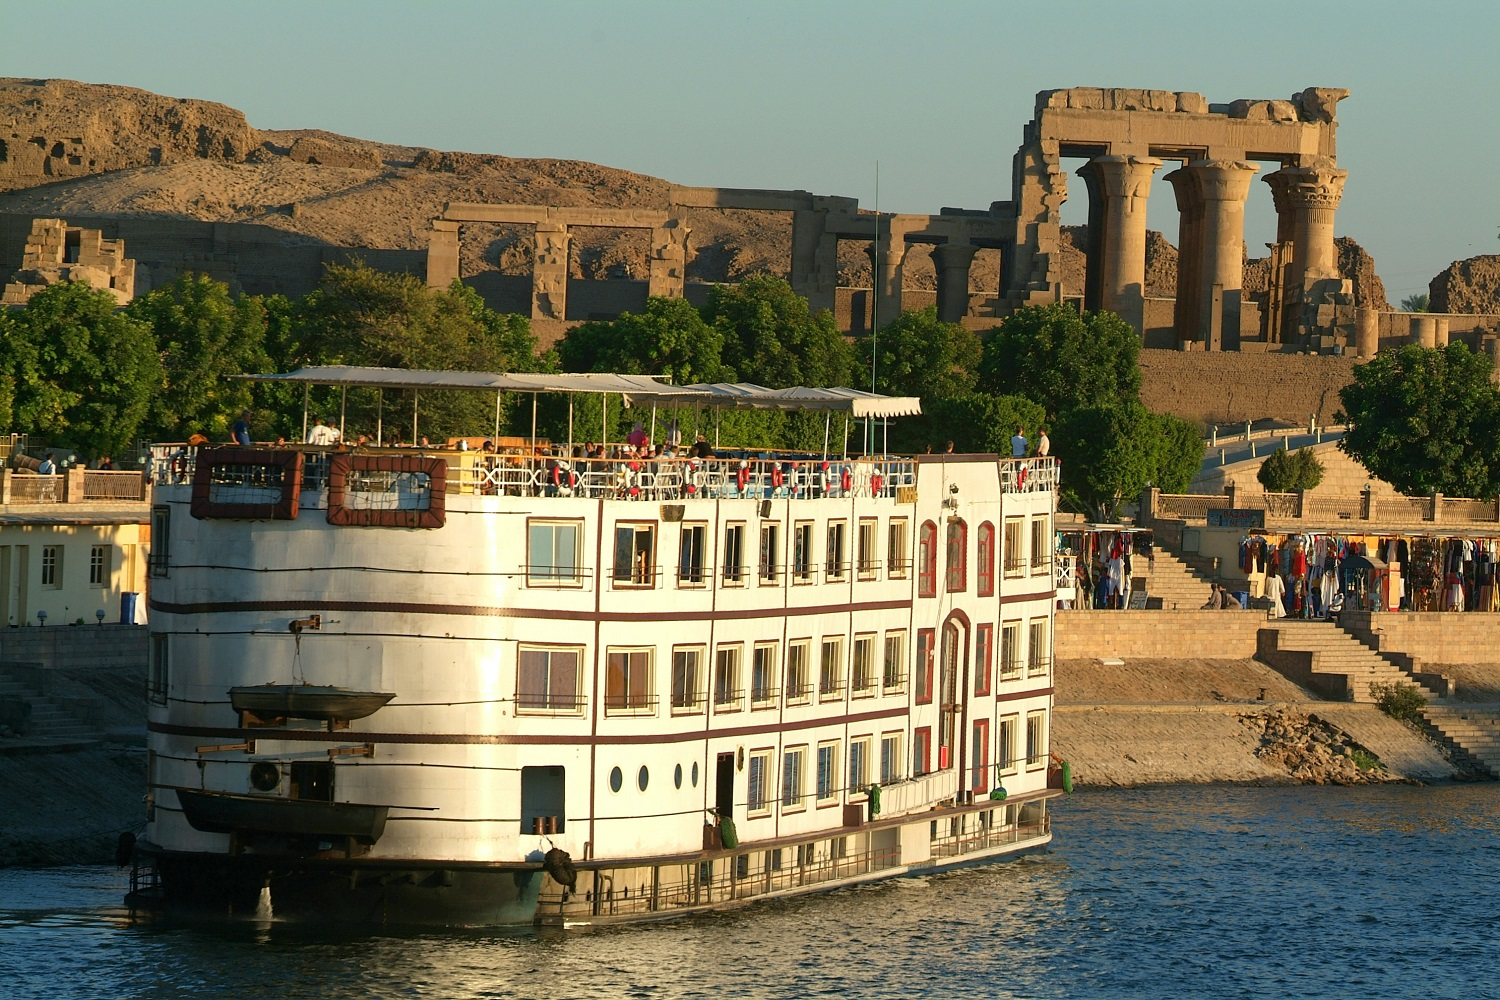 Cruise ship on the Nile River